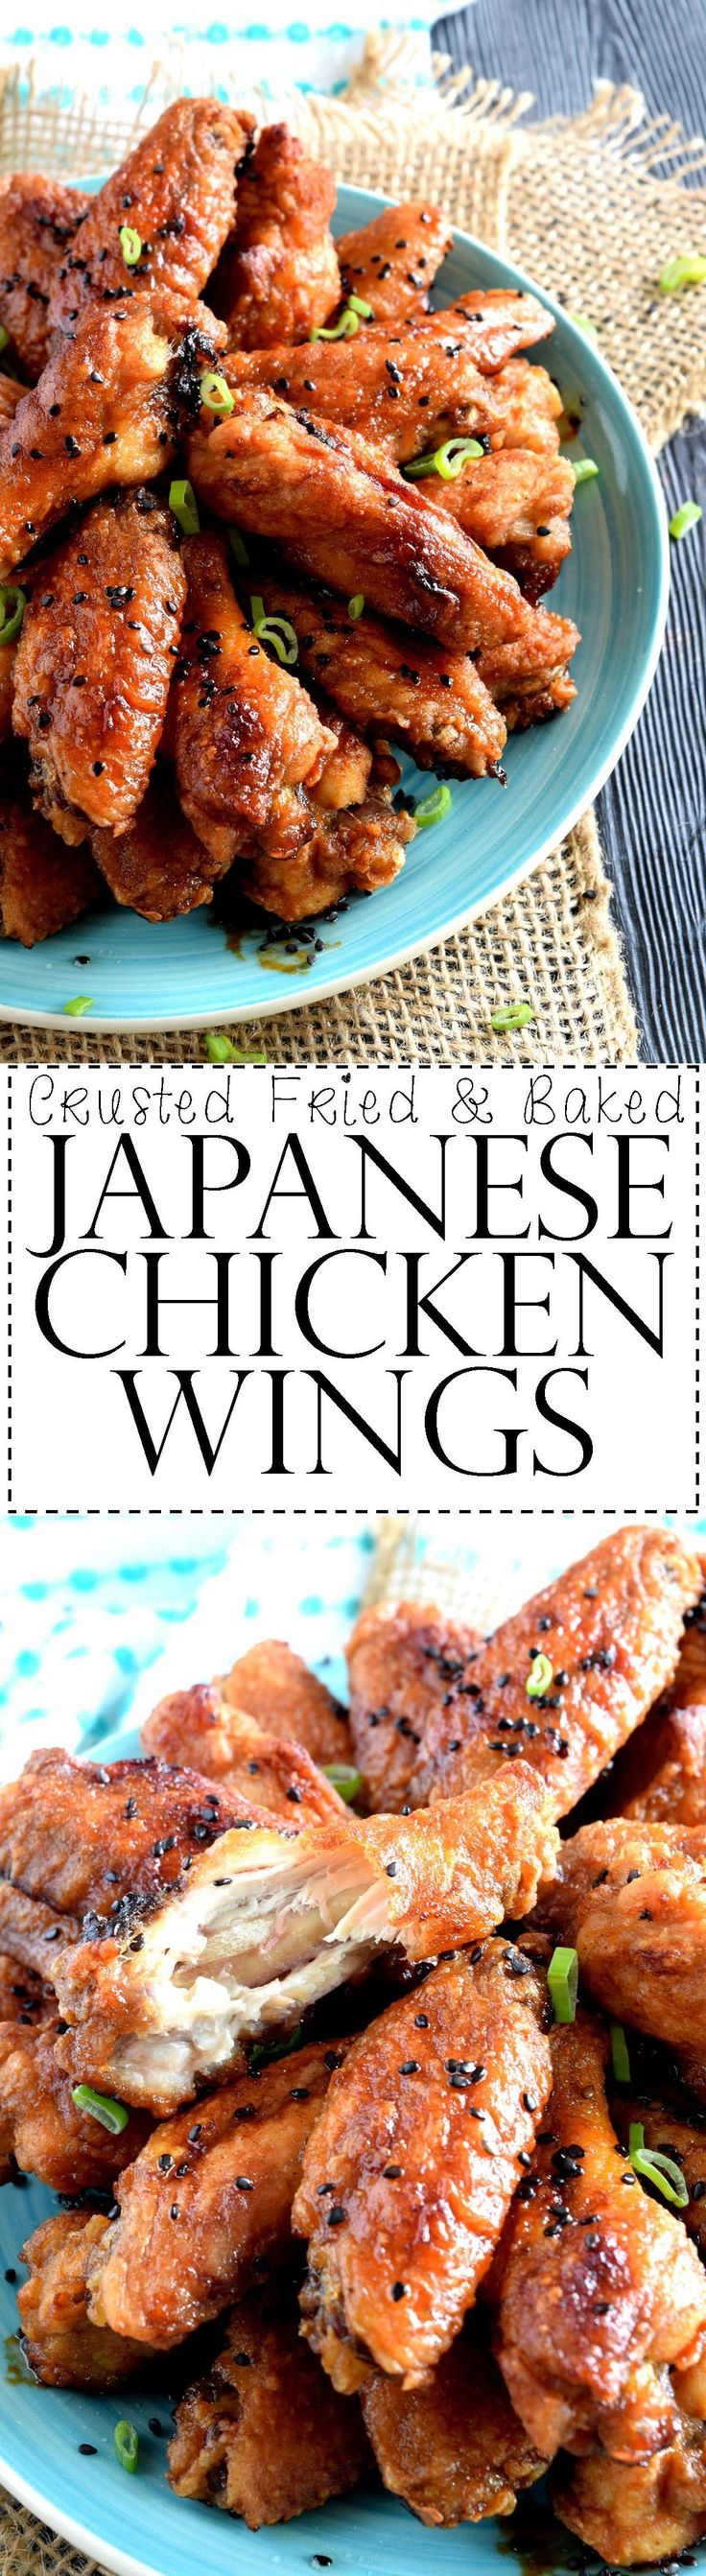 Crusted Fried and Baked Japanese Chicken Wings - Both fried and baked, these sweet and salty Japanese Chicken Wings are super moist and tender on the inside with a golden crispy crust on the outside. Impress your guests with this delicious and gorgeous wing recipe!